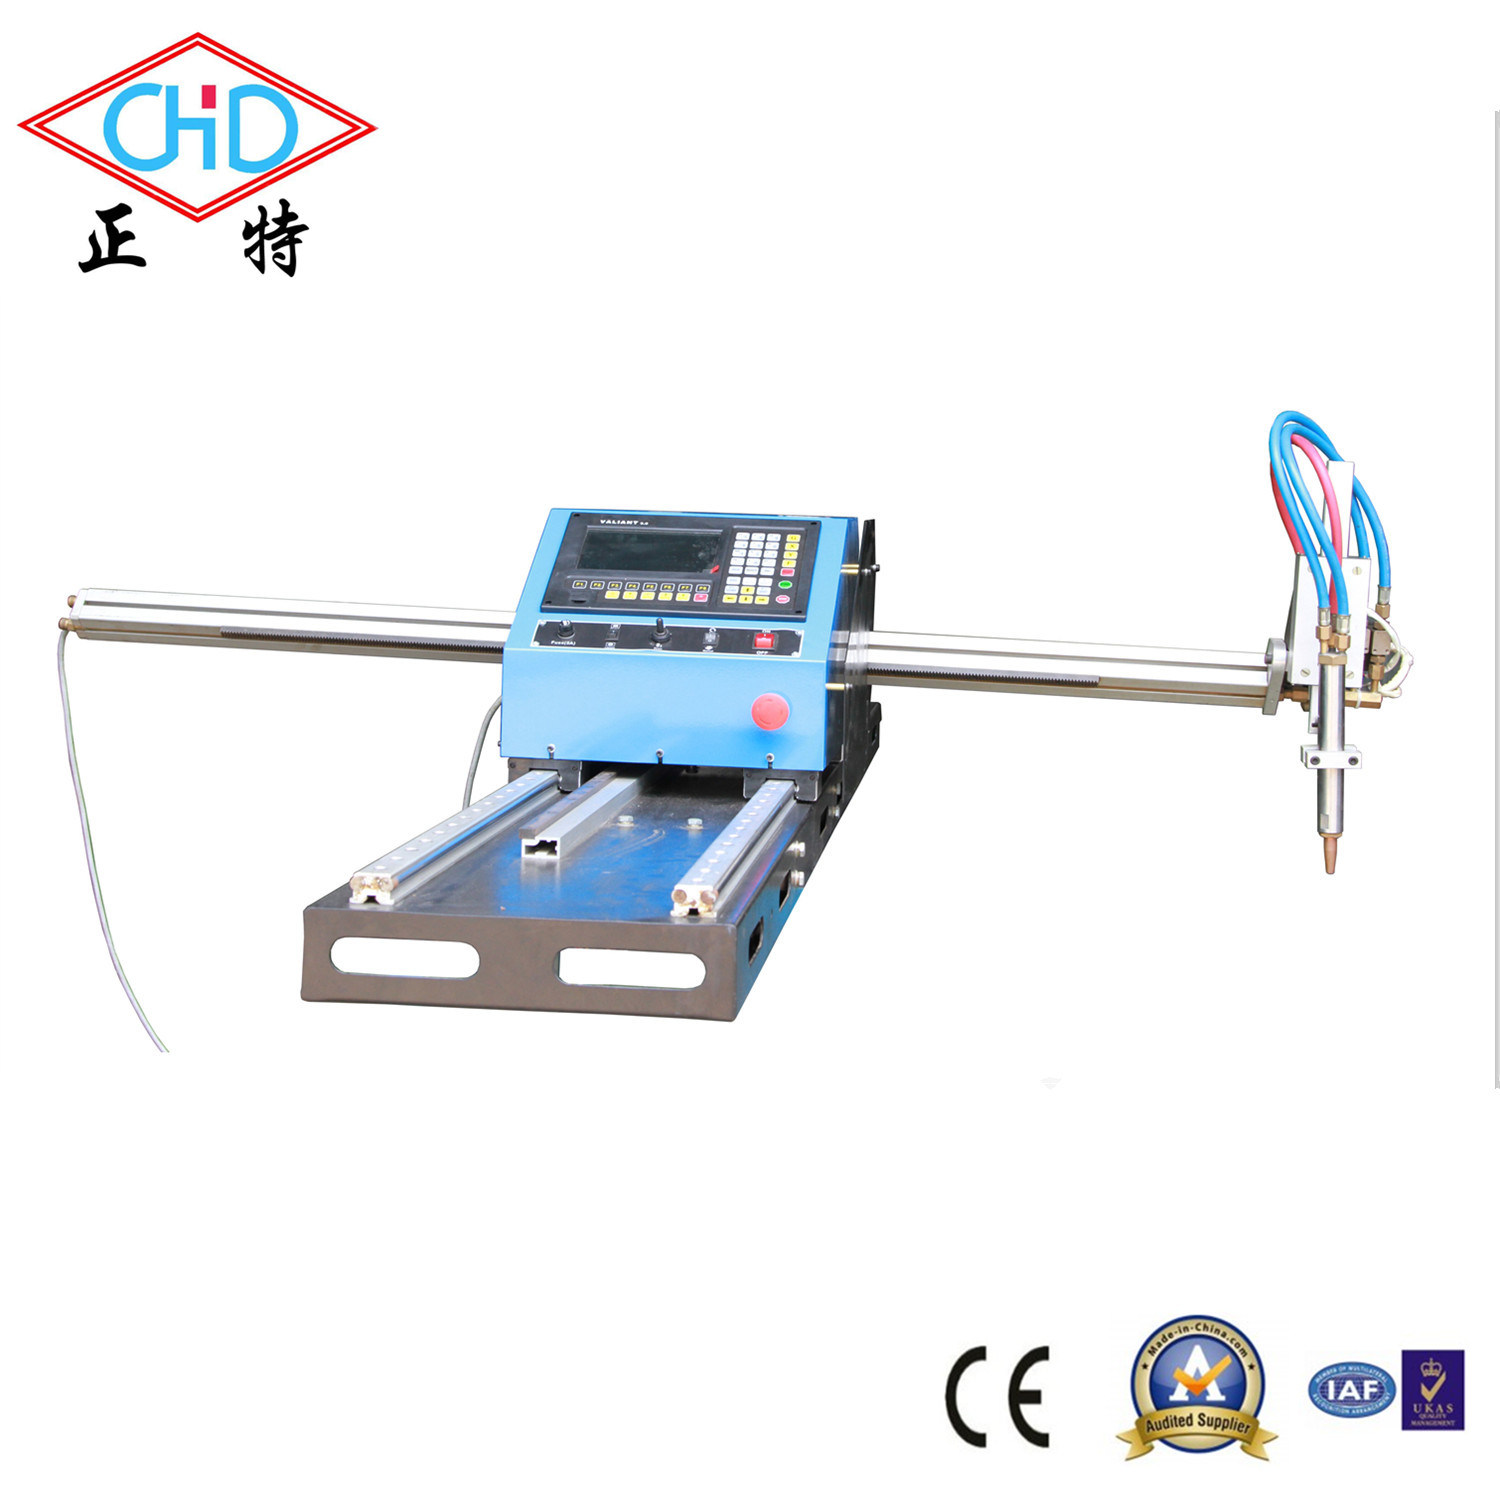 Portable CNC Plasma Cutting Machine Steel Cutting Machine